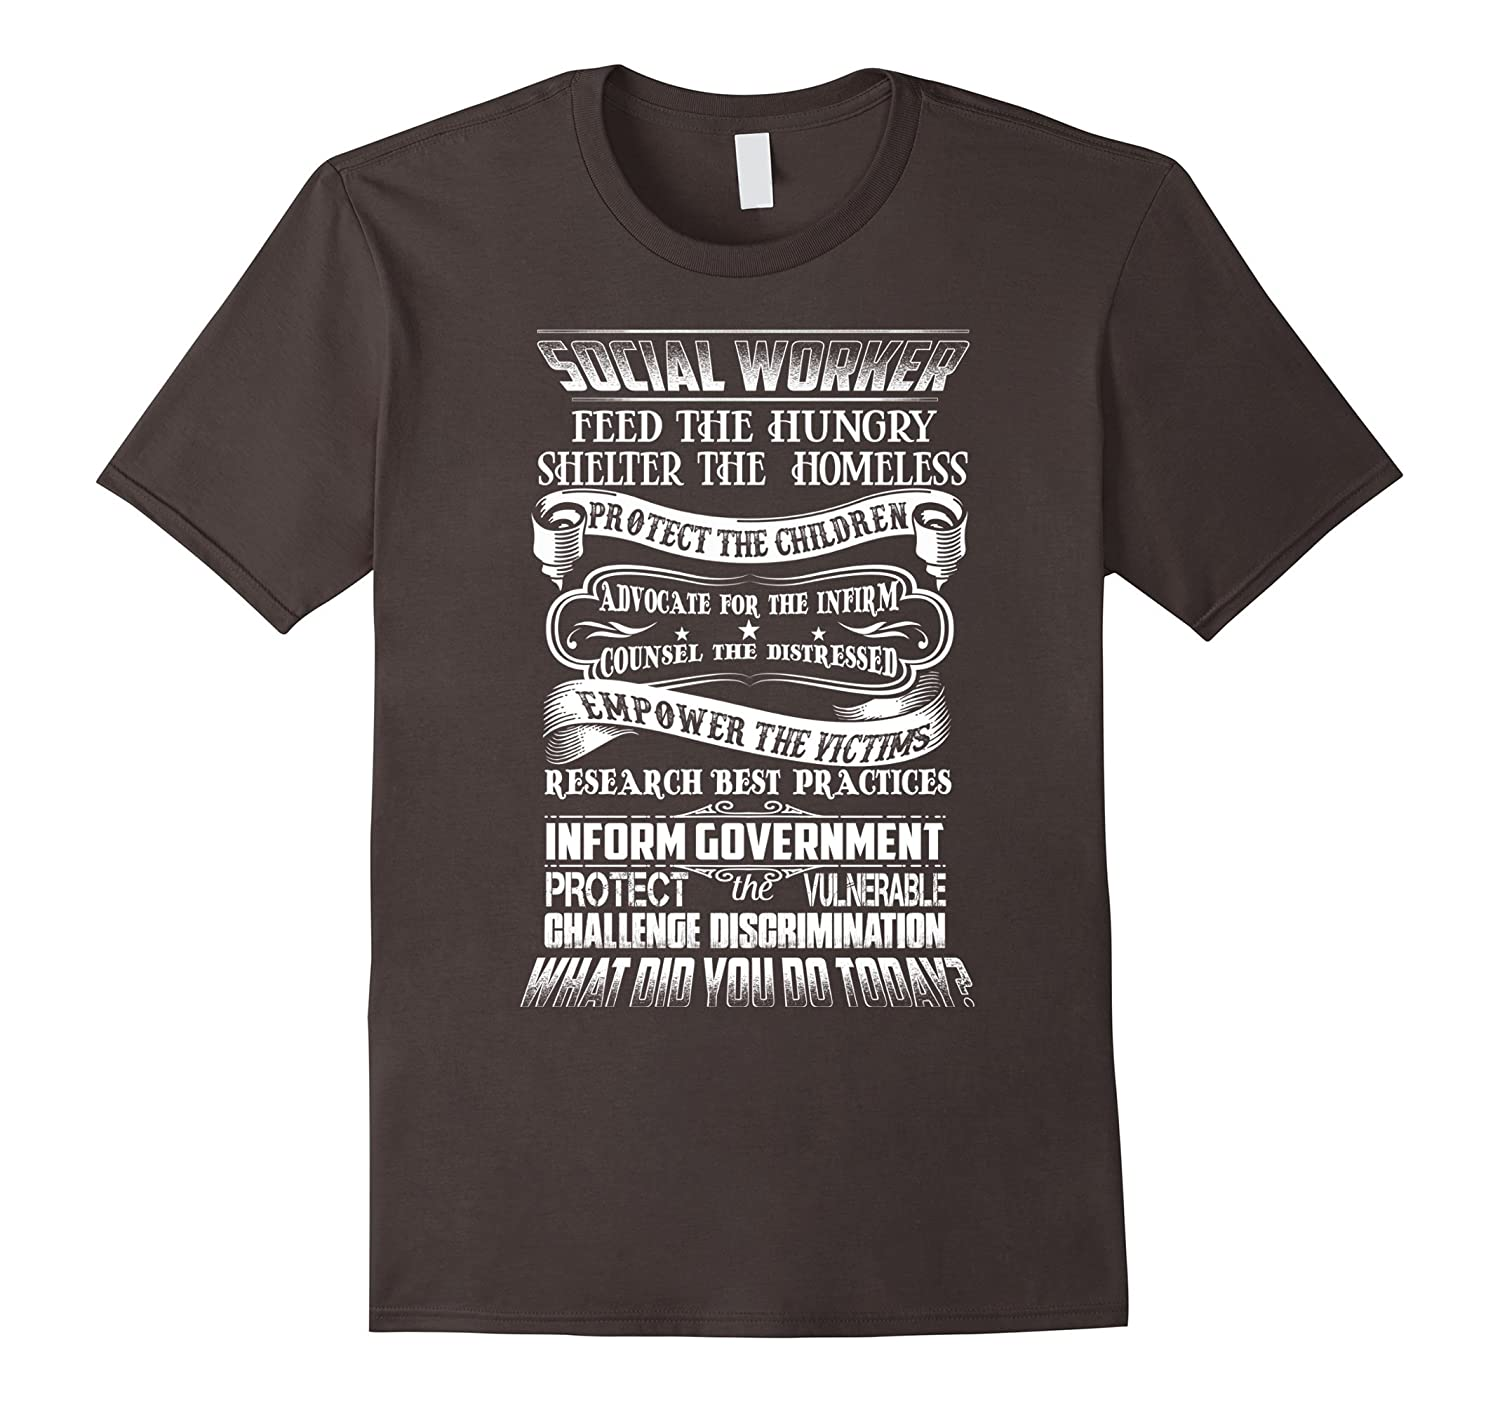 Social Worker Feed The Hungry Shelter The Homeless T Shirt